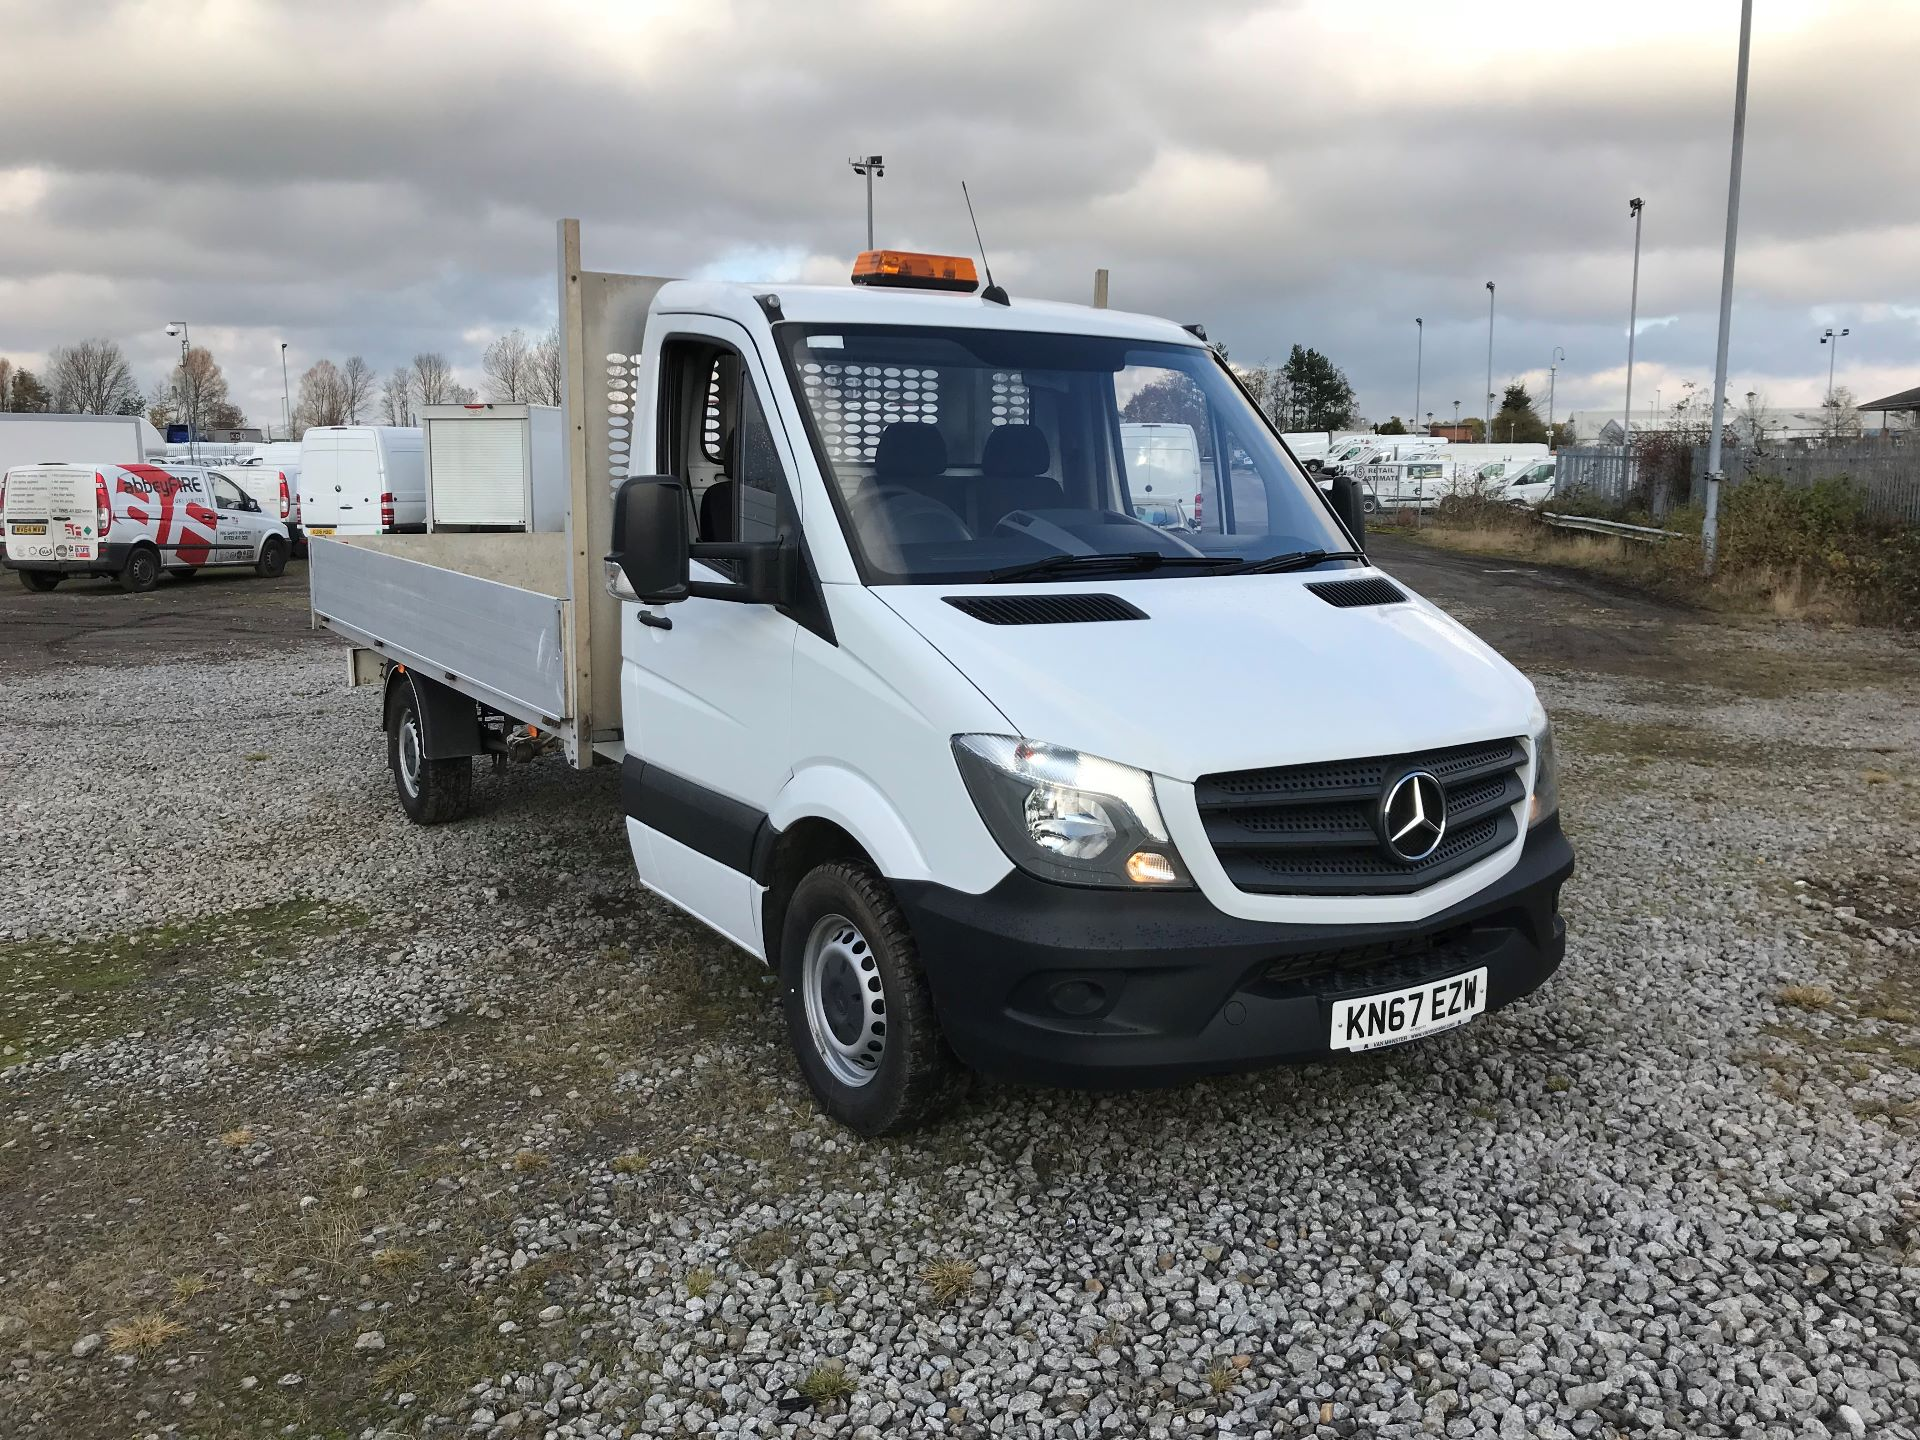 2017 Mercedes-Benz Sprinter 3.5T Chassis Cab (KN67EZW)